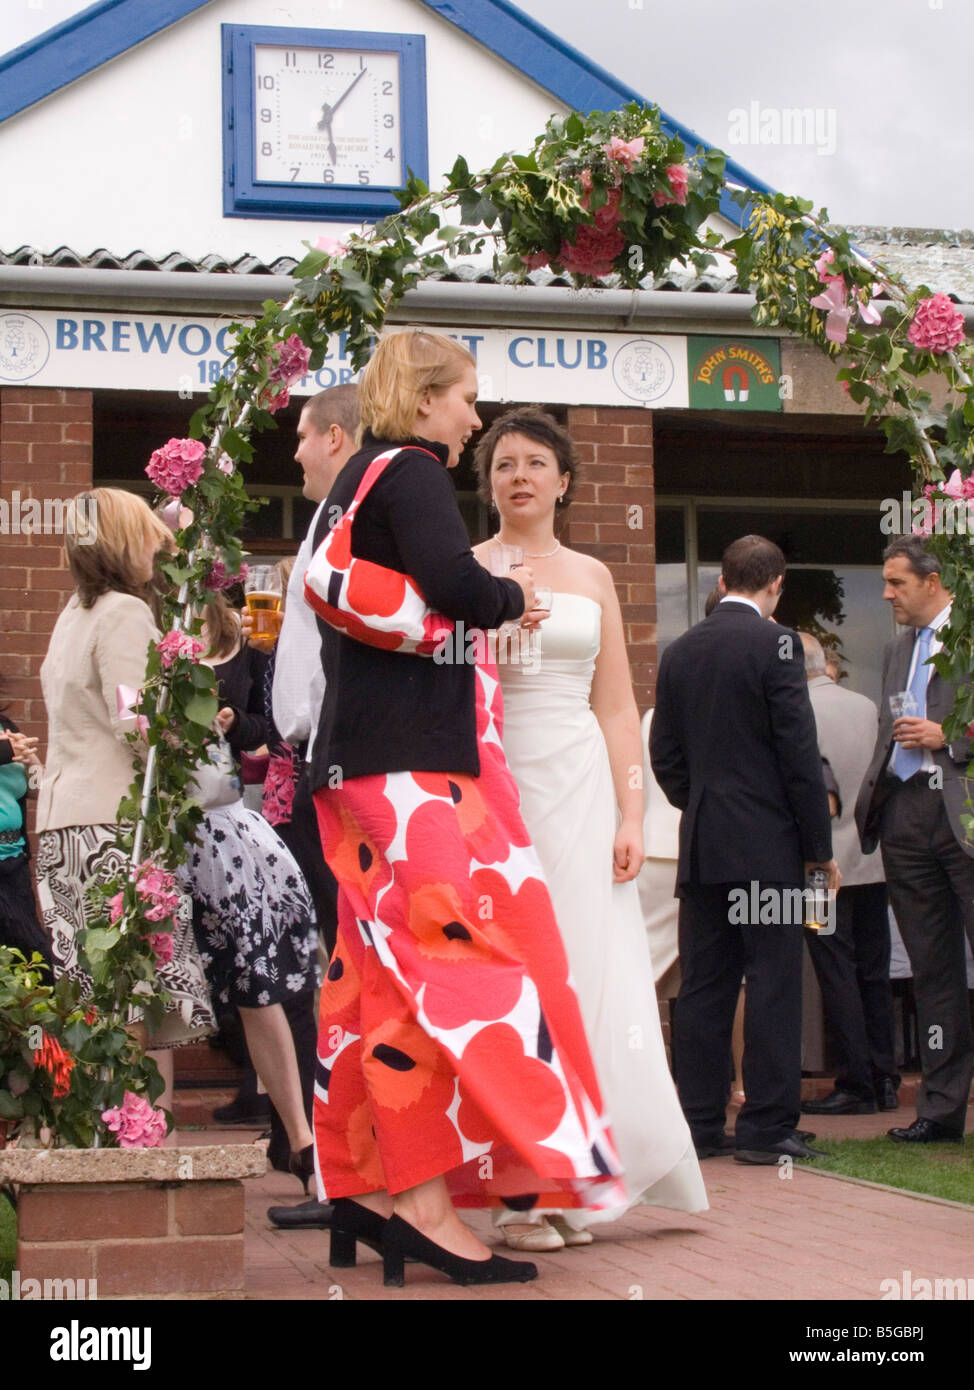 Staffordshire UK August Wedding reception guests standing outside a cricket pavilion - Stock Image